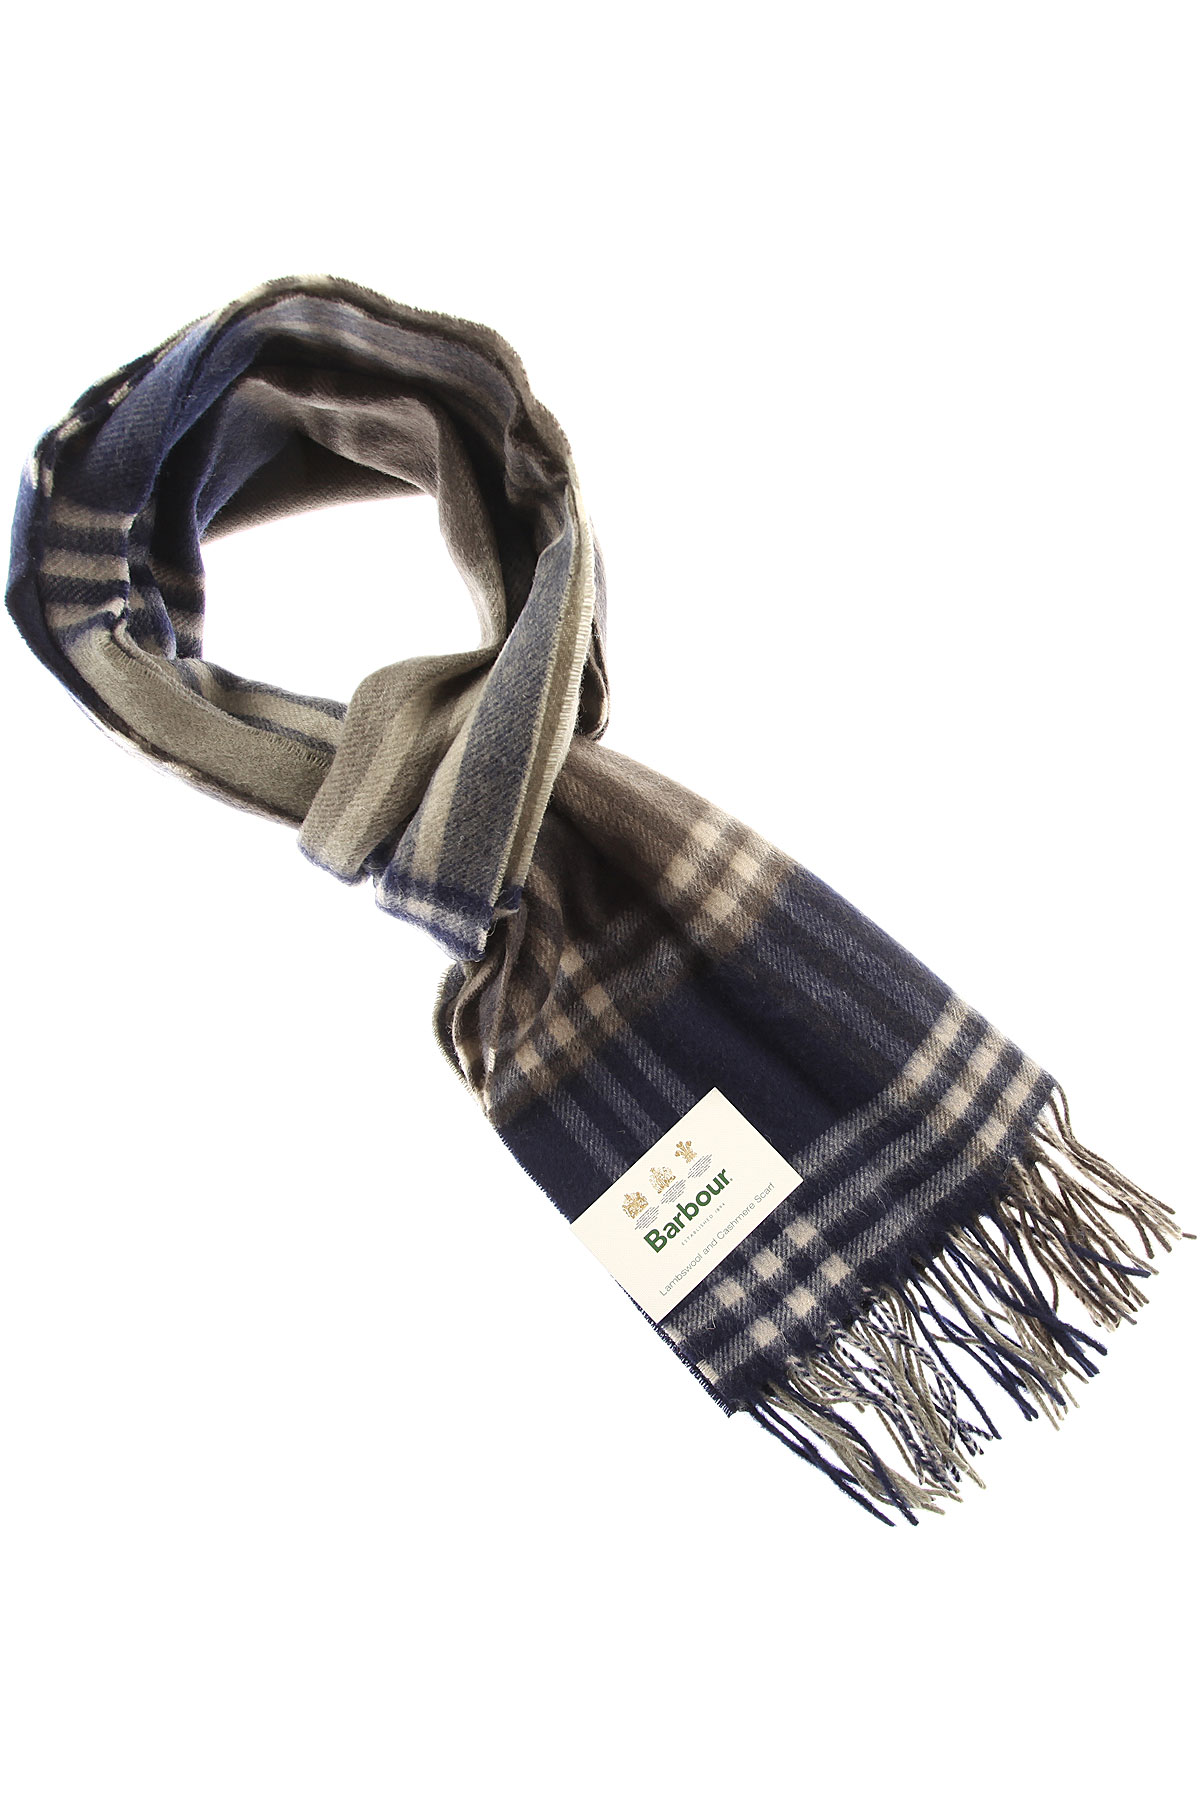 Image of Barbour Scarf for Men, Olive Green, Wool, 2017